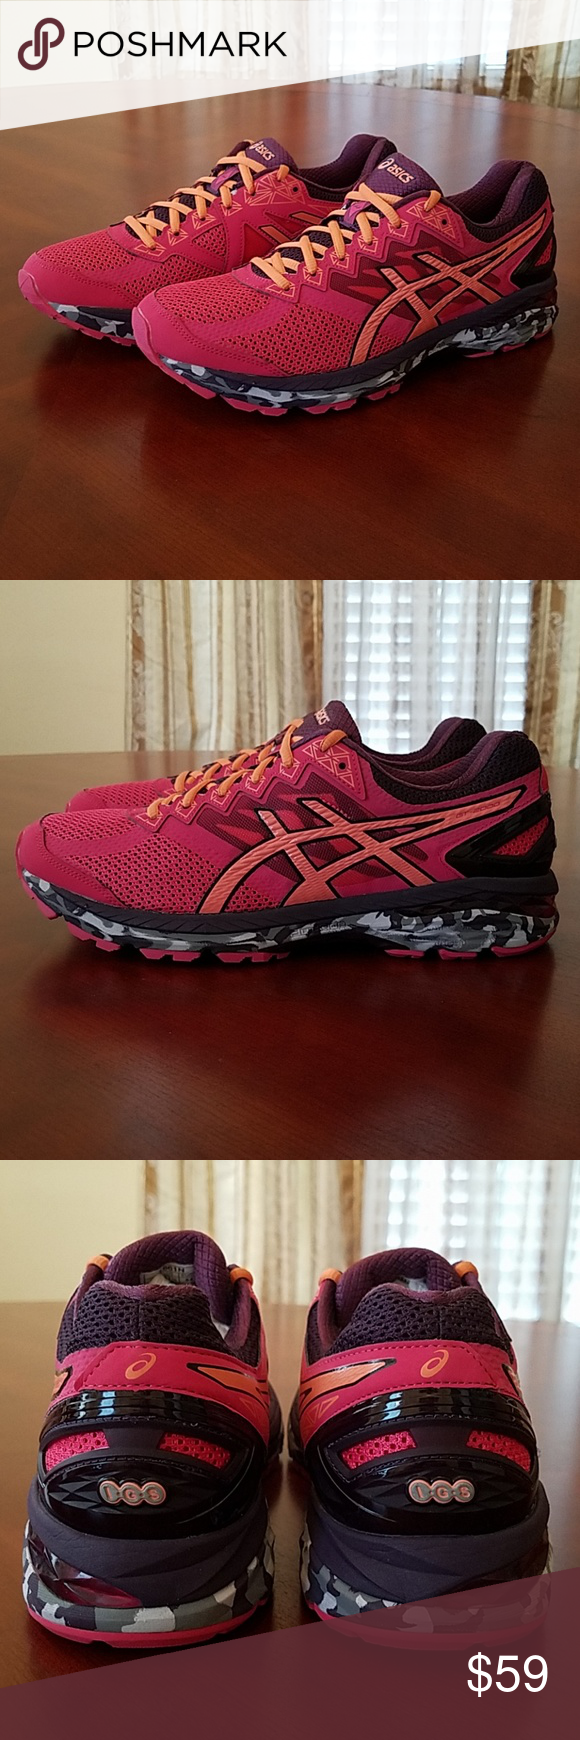 NEW Asics GT 2000 4 Trail Running Shoes T661N NEW Asics GT